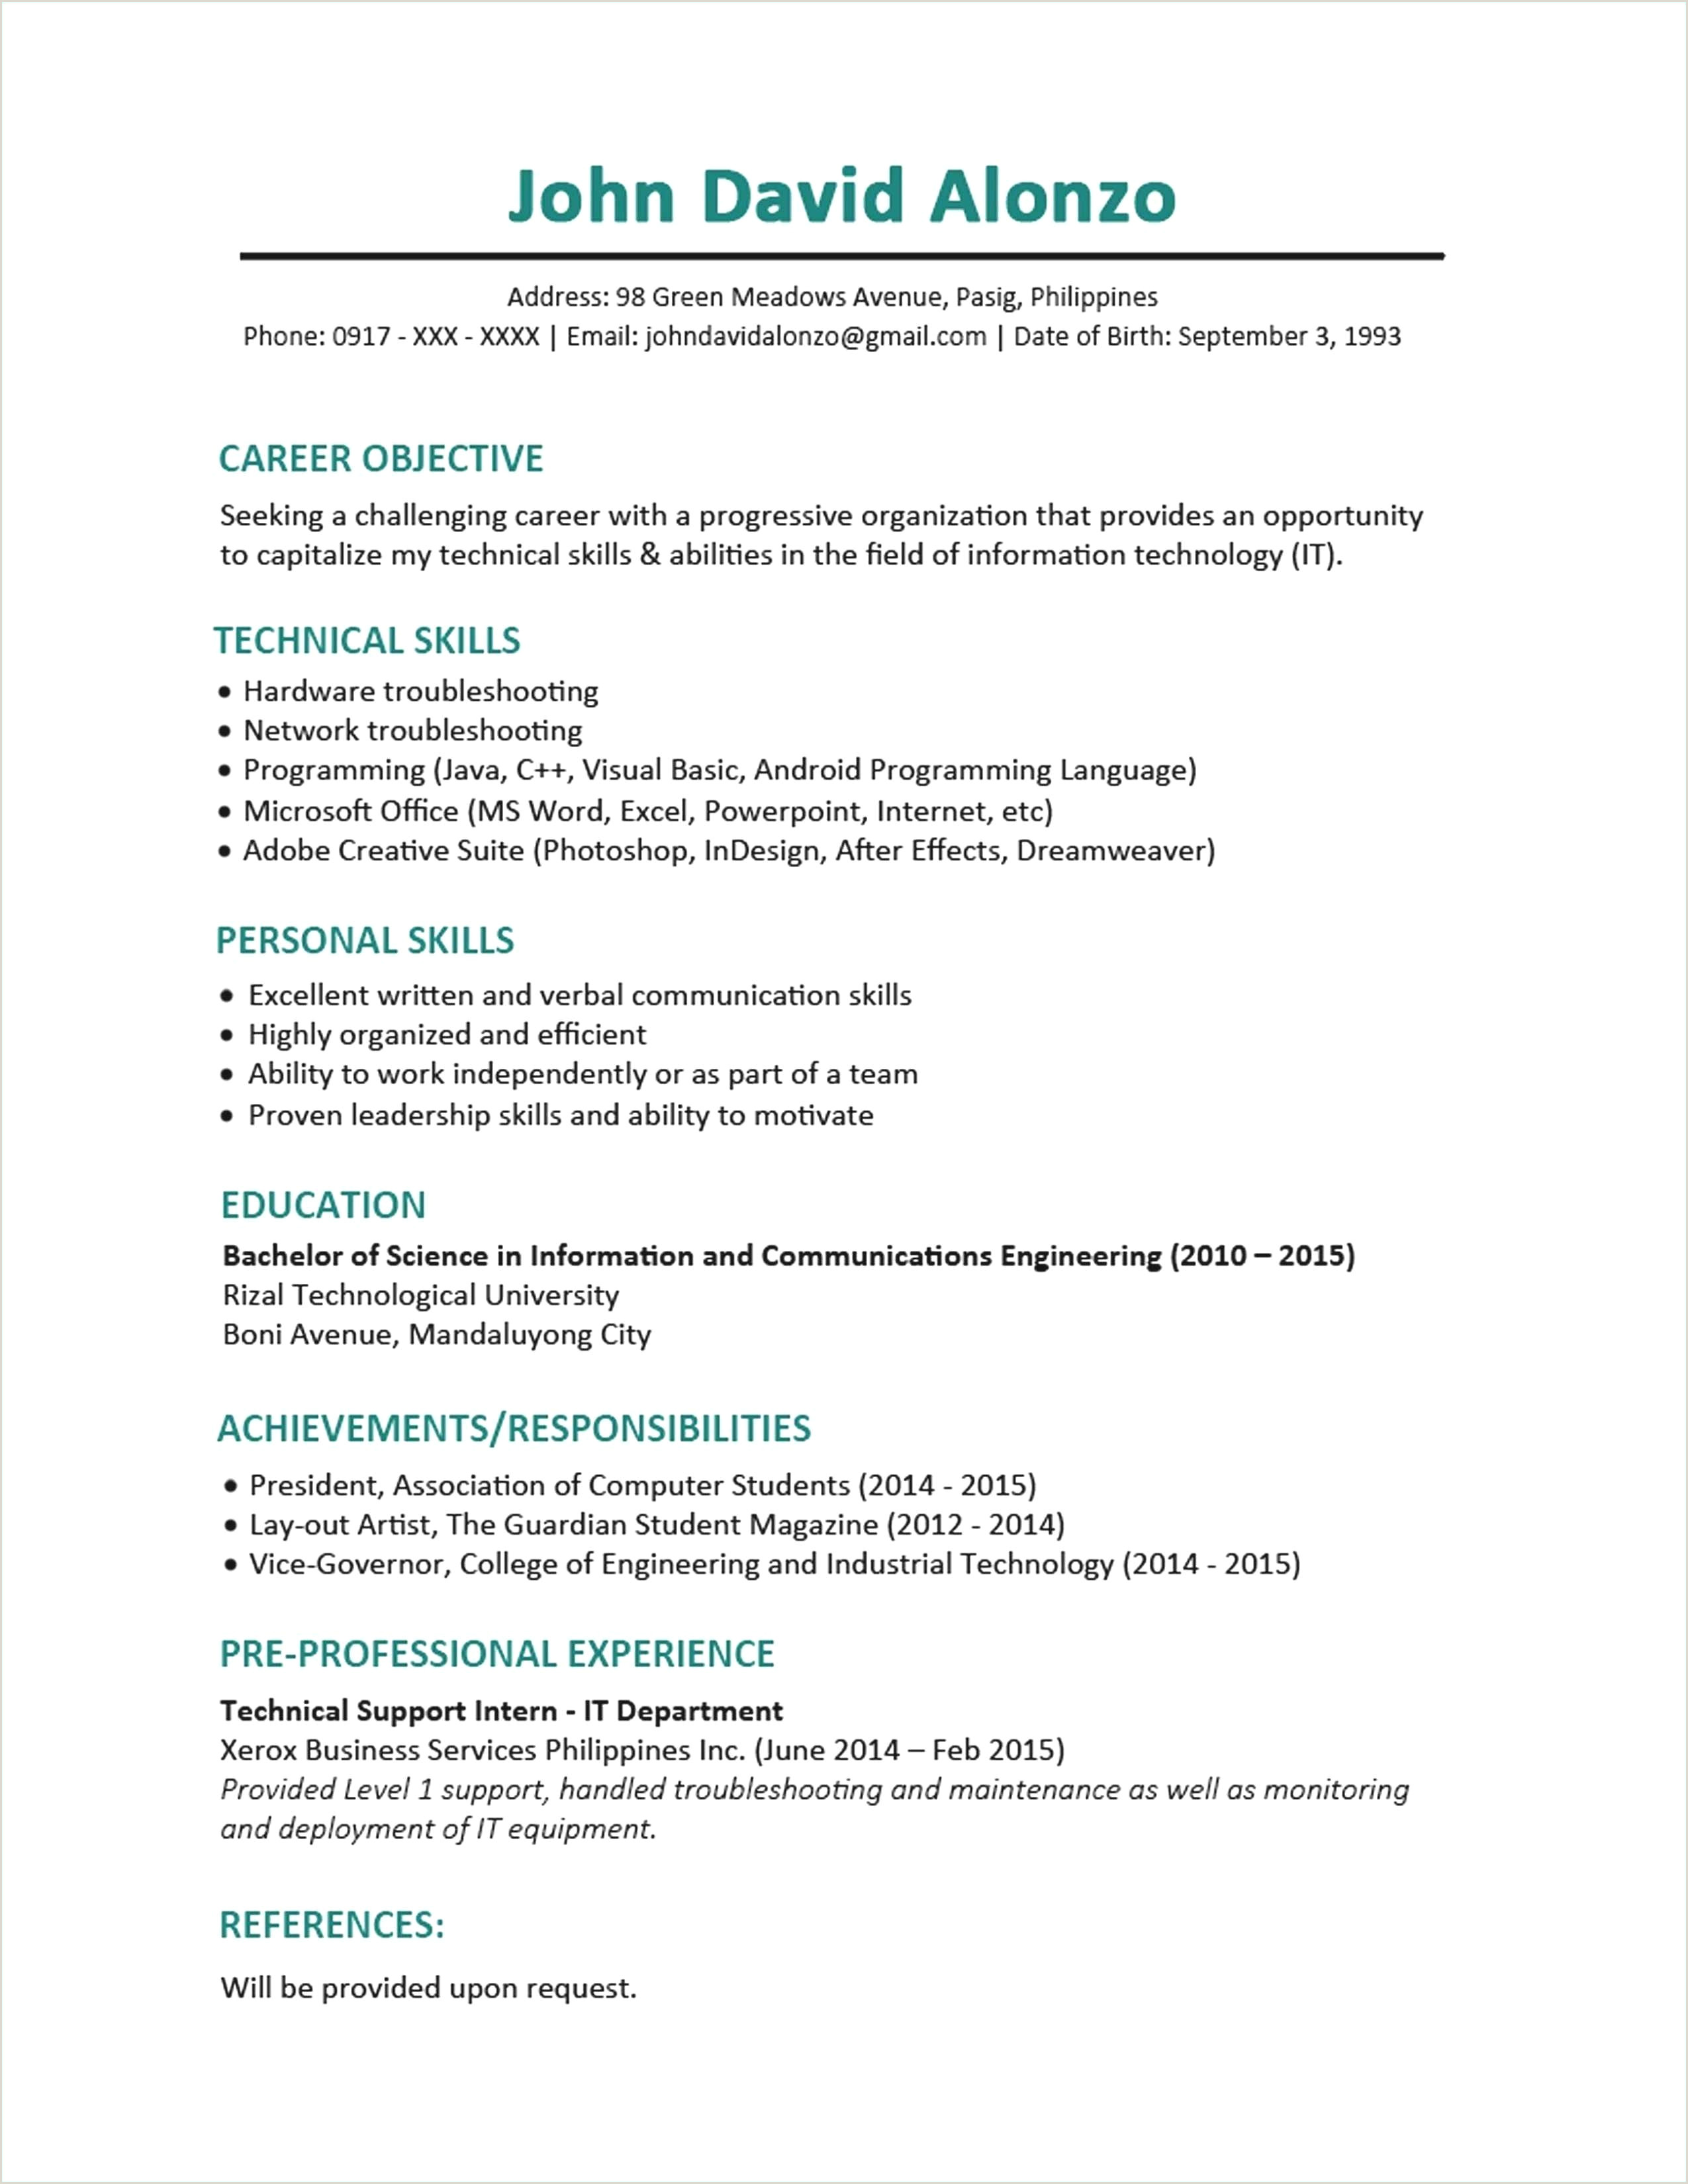 Resume format for Job Word Doc Microsoft Word Resume Examples Luxury Resumes Resume